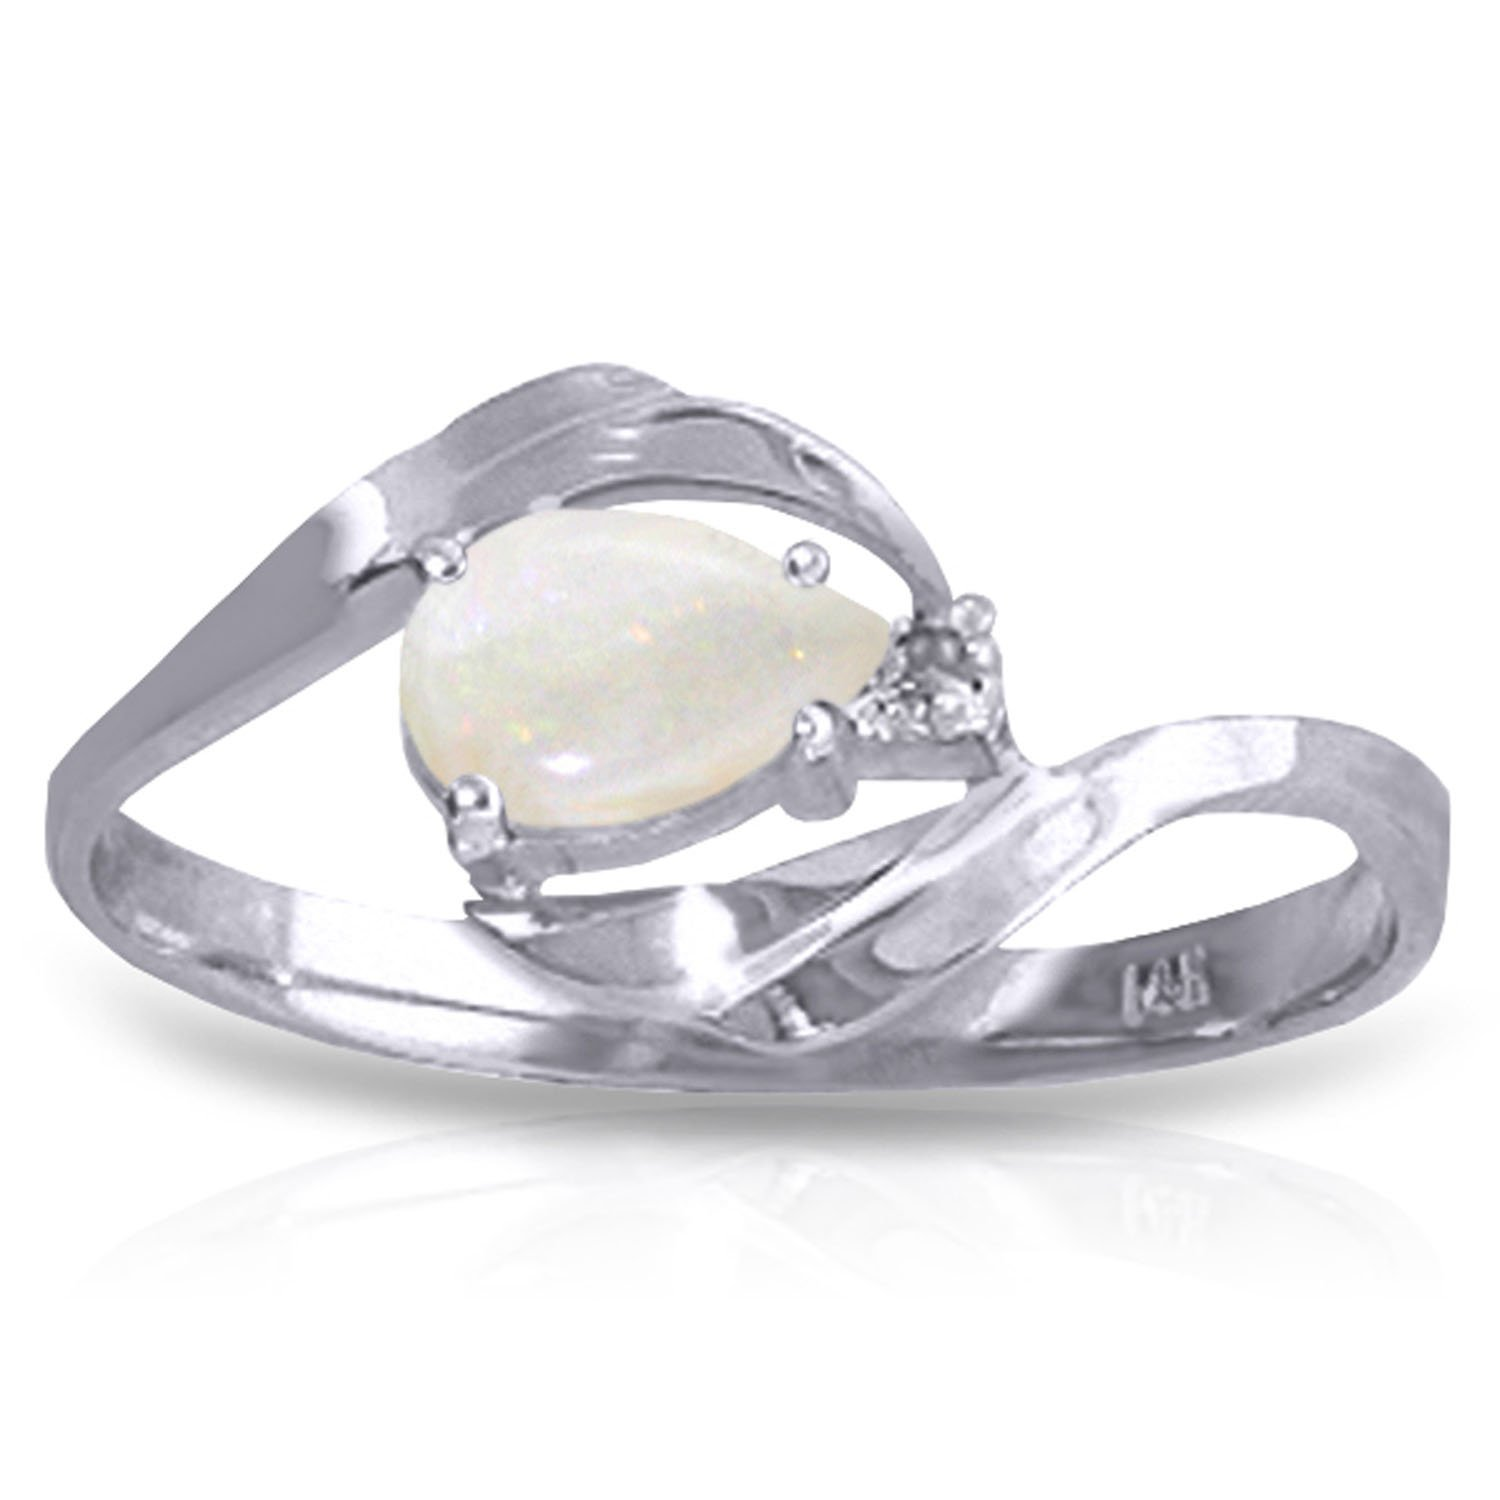 0.26 Carat 14k Solid White Gold Ring with Natural Diamond and Pear-shaped Opal - Size 10.5